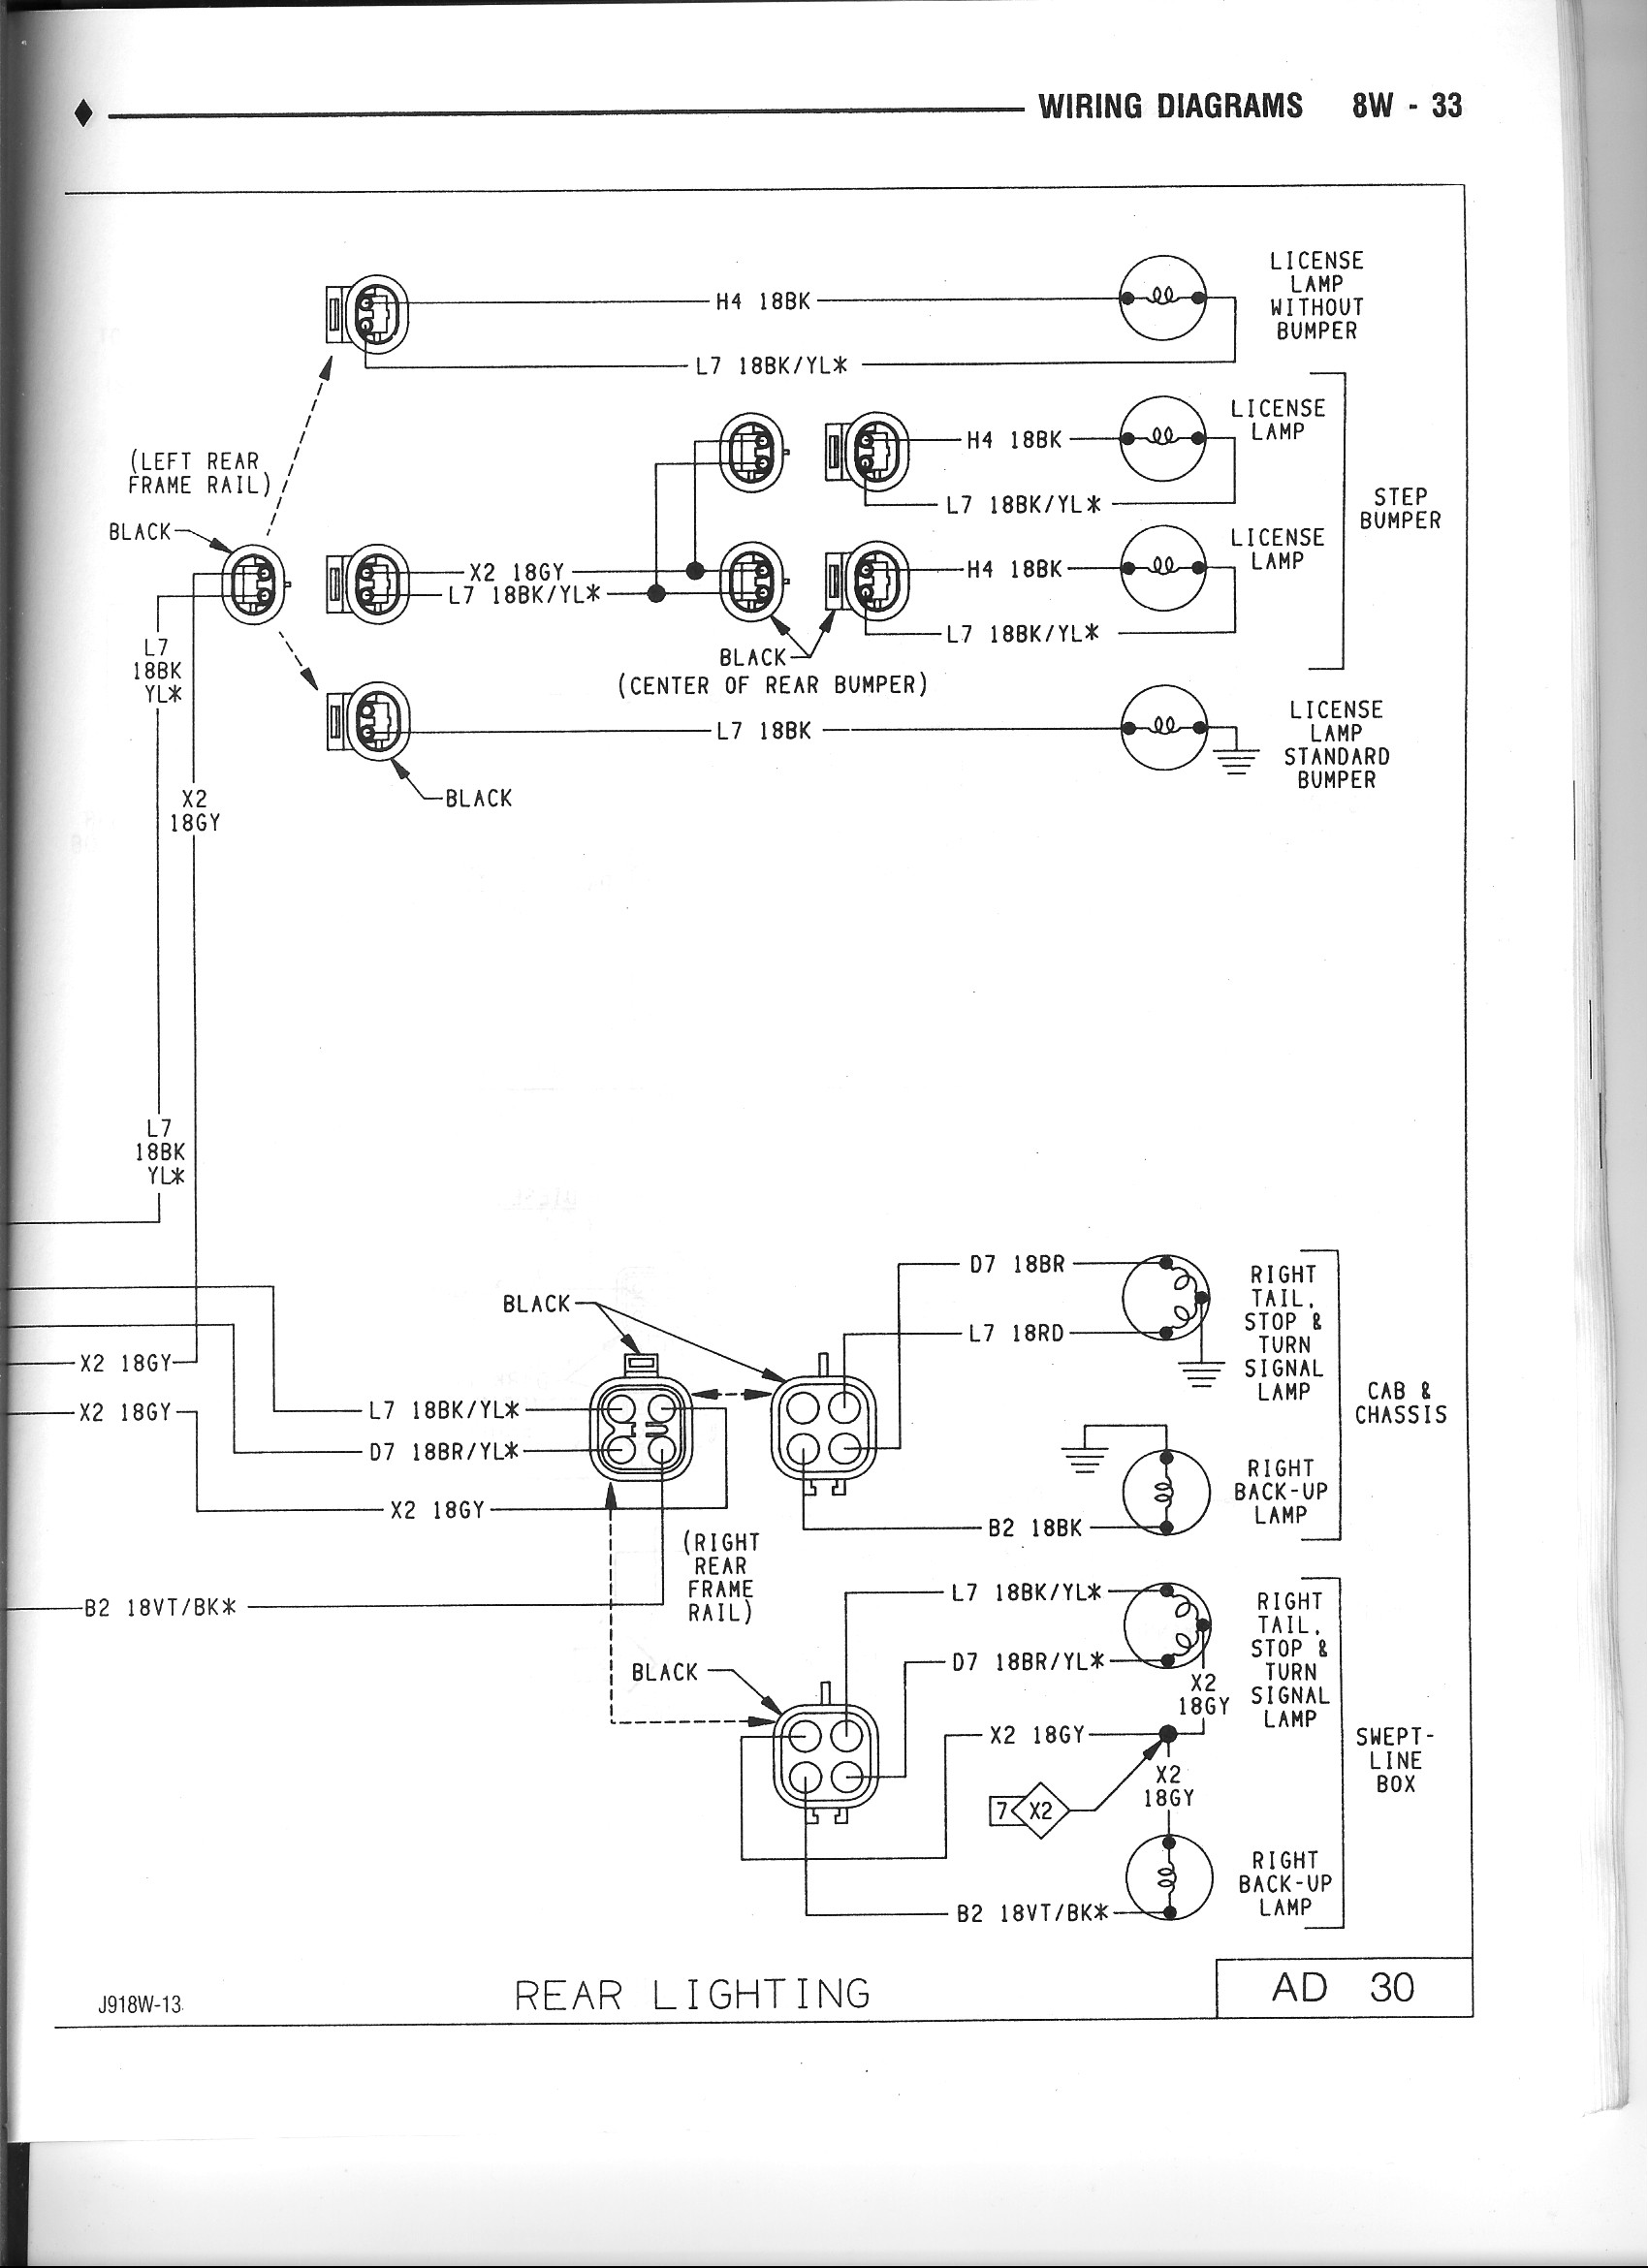 1992 Dodge D250 Wiring Diagram Starting Know About 92 Jeep Wrangler Stereo Harness Diesel Truck Resource Forums Cummins